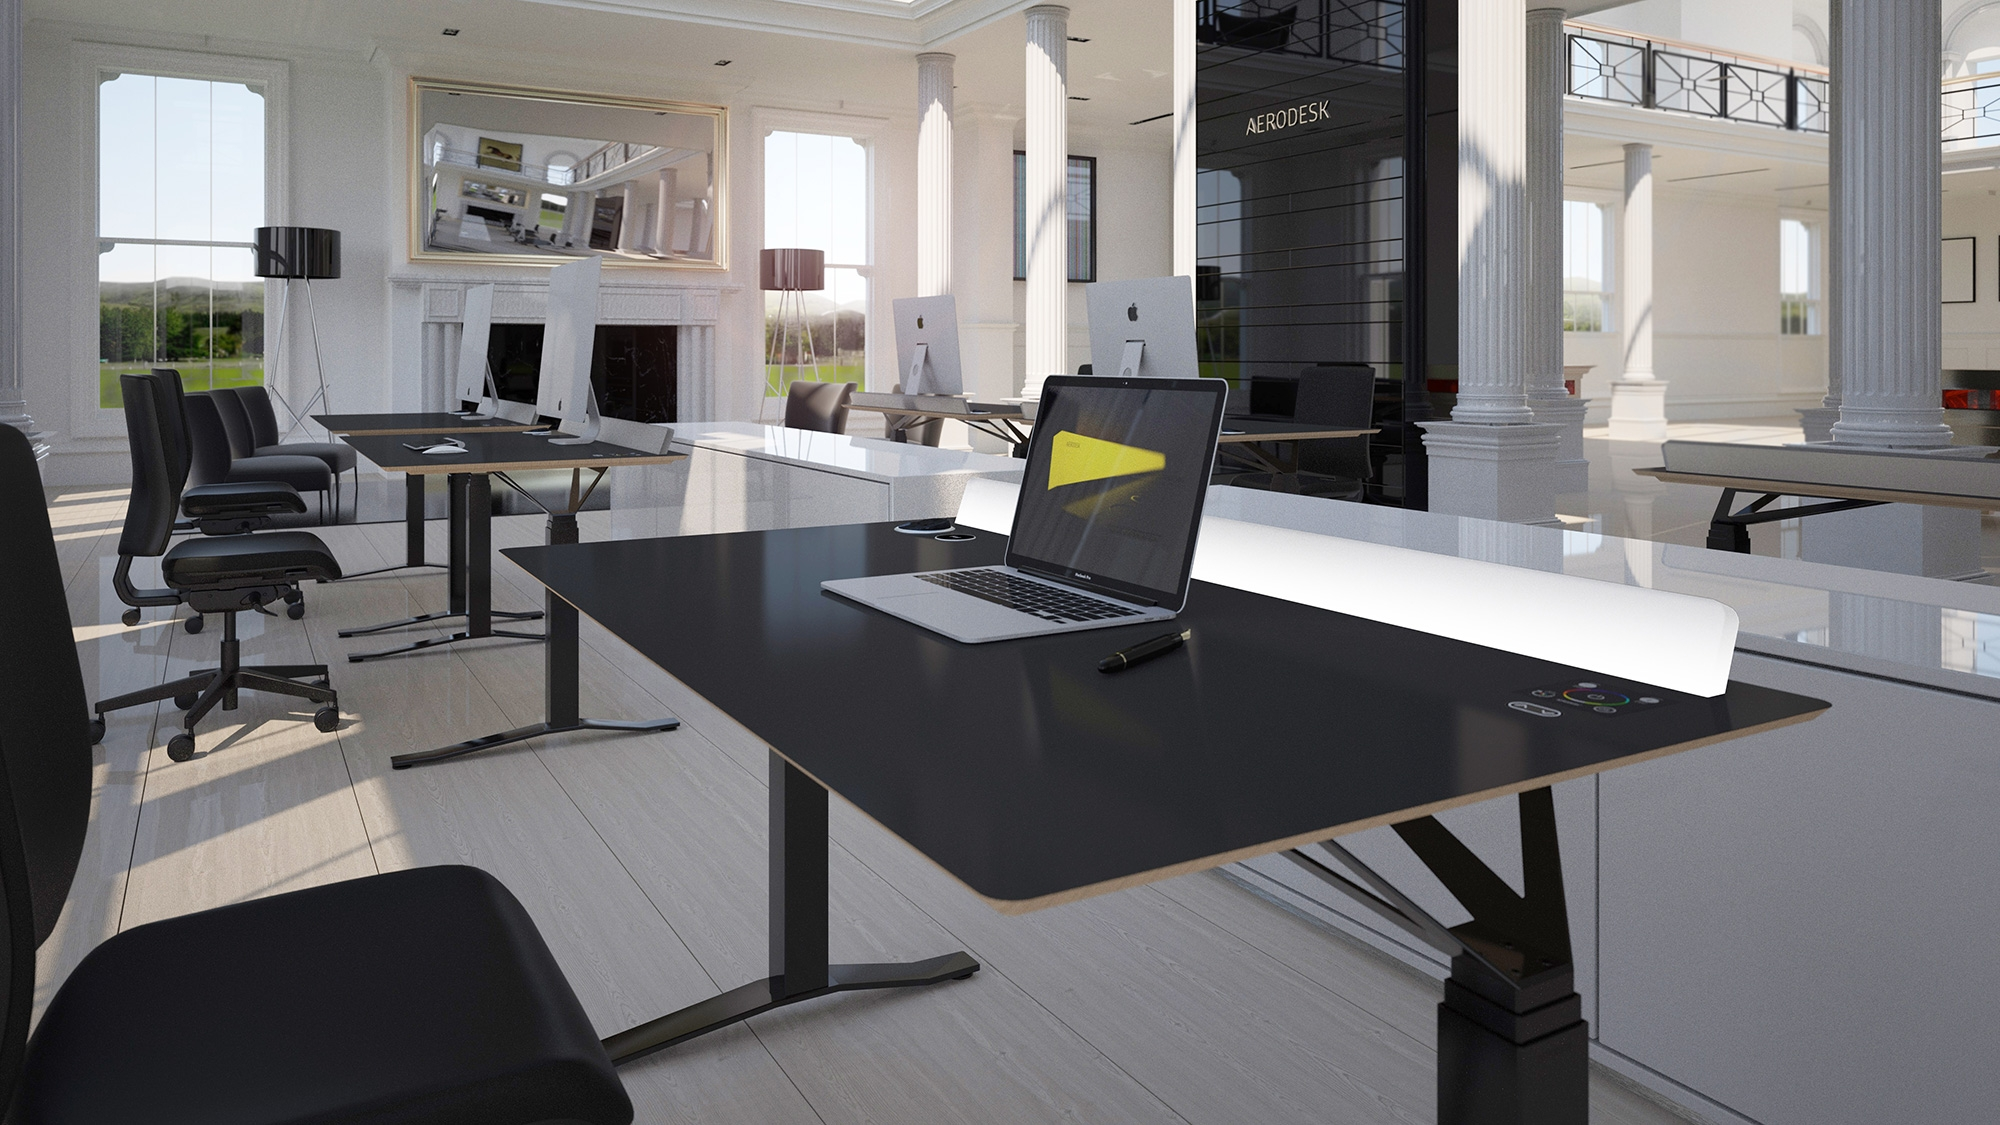 Best Desk Design 7 best desks for designers 2017 - digital arts